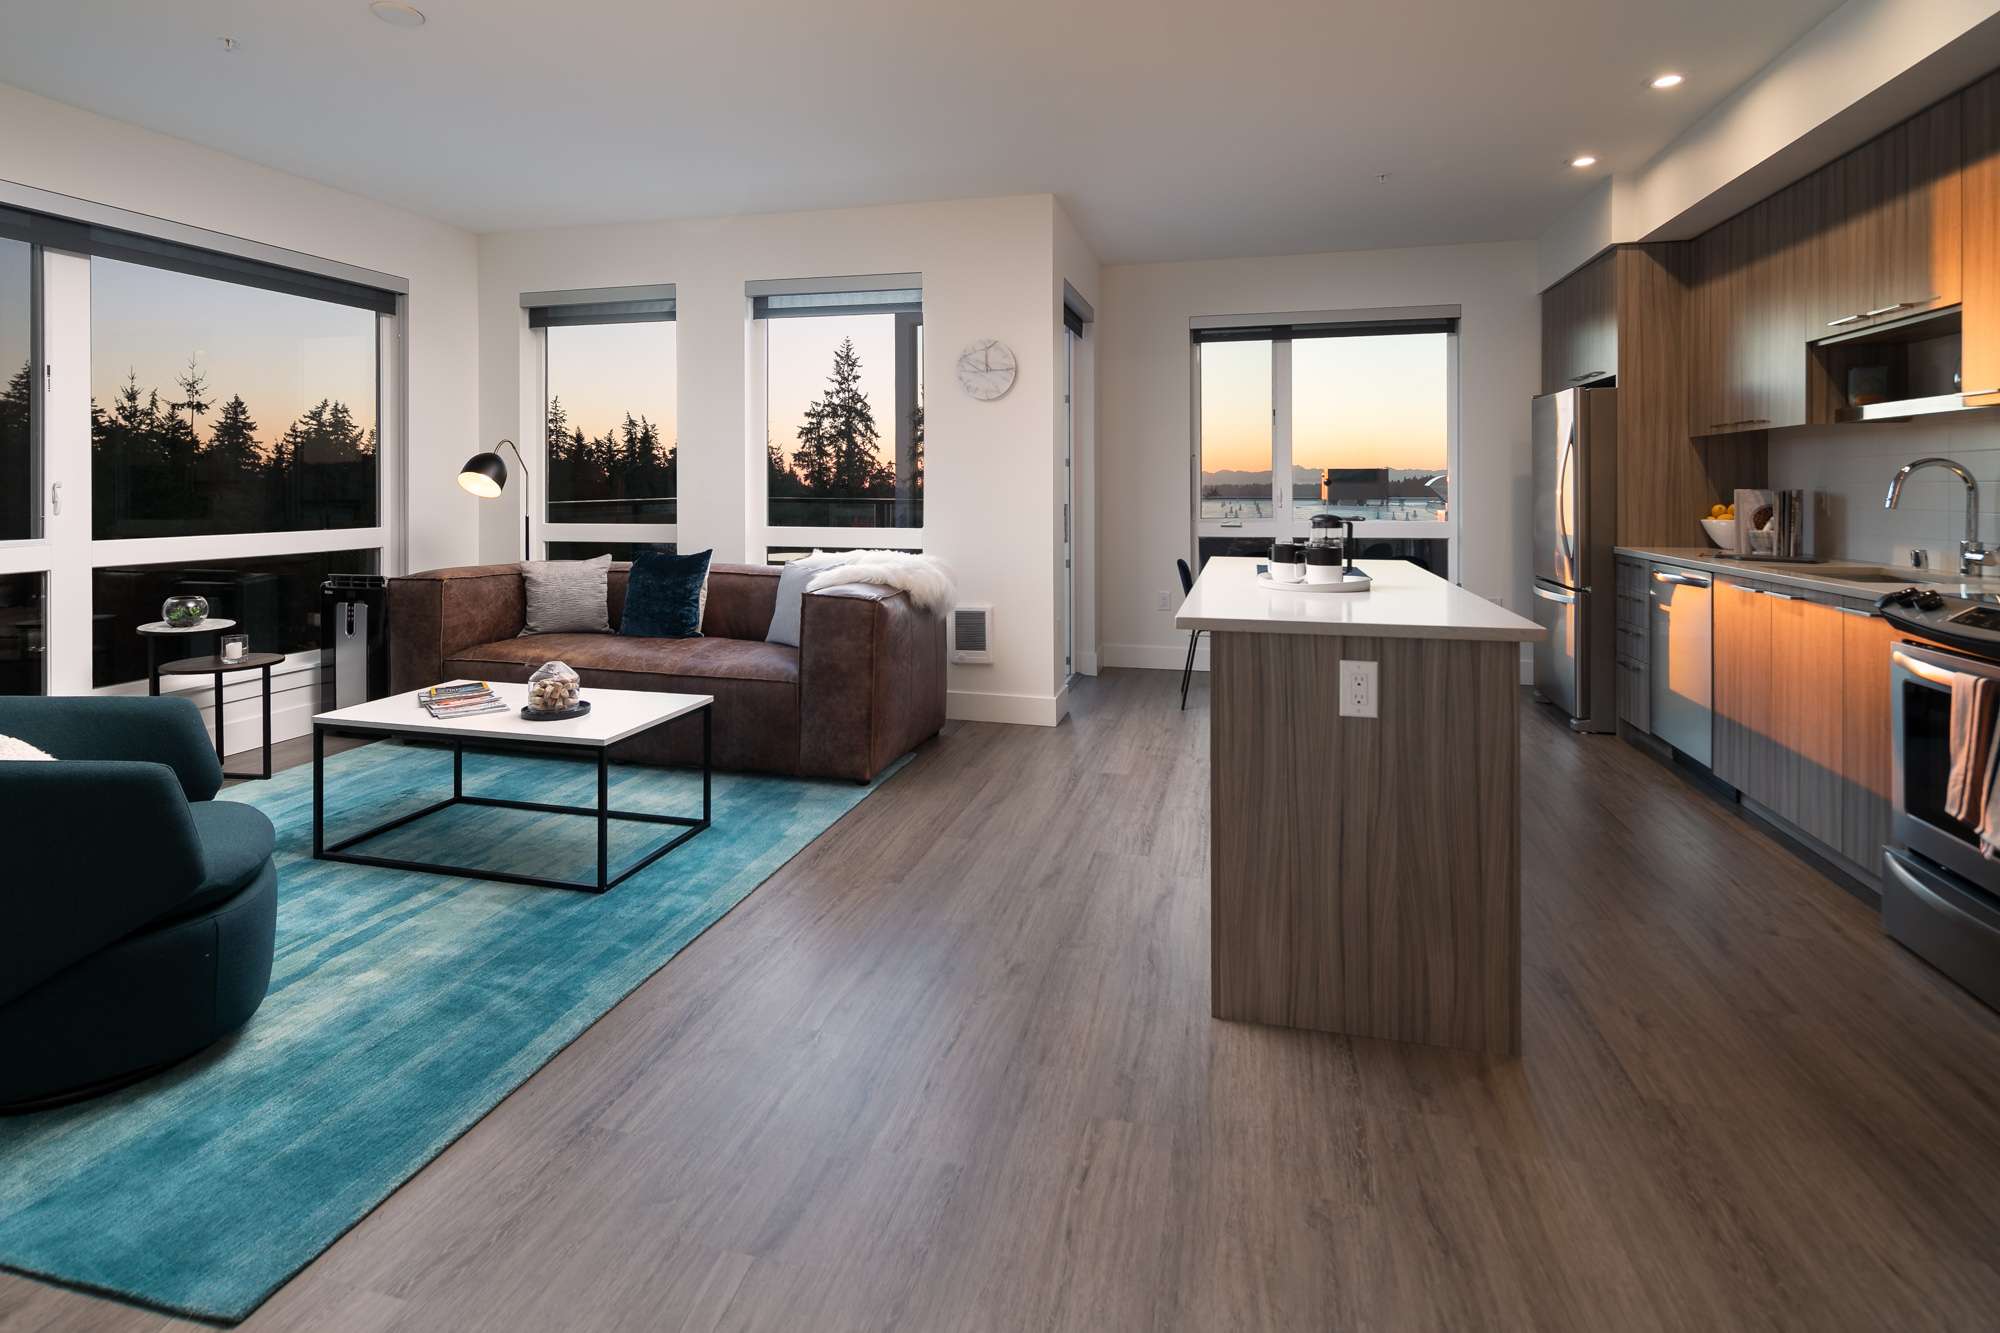 Interior of modern apartment with open kitchen, seating area with windows on two walls.